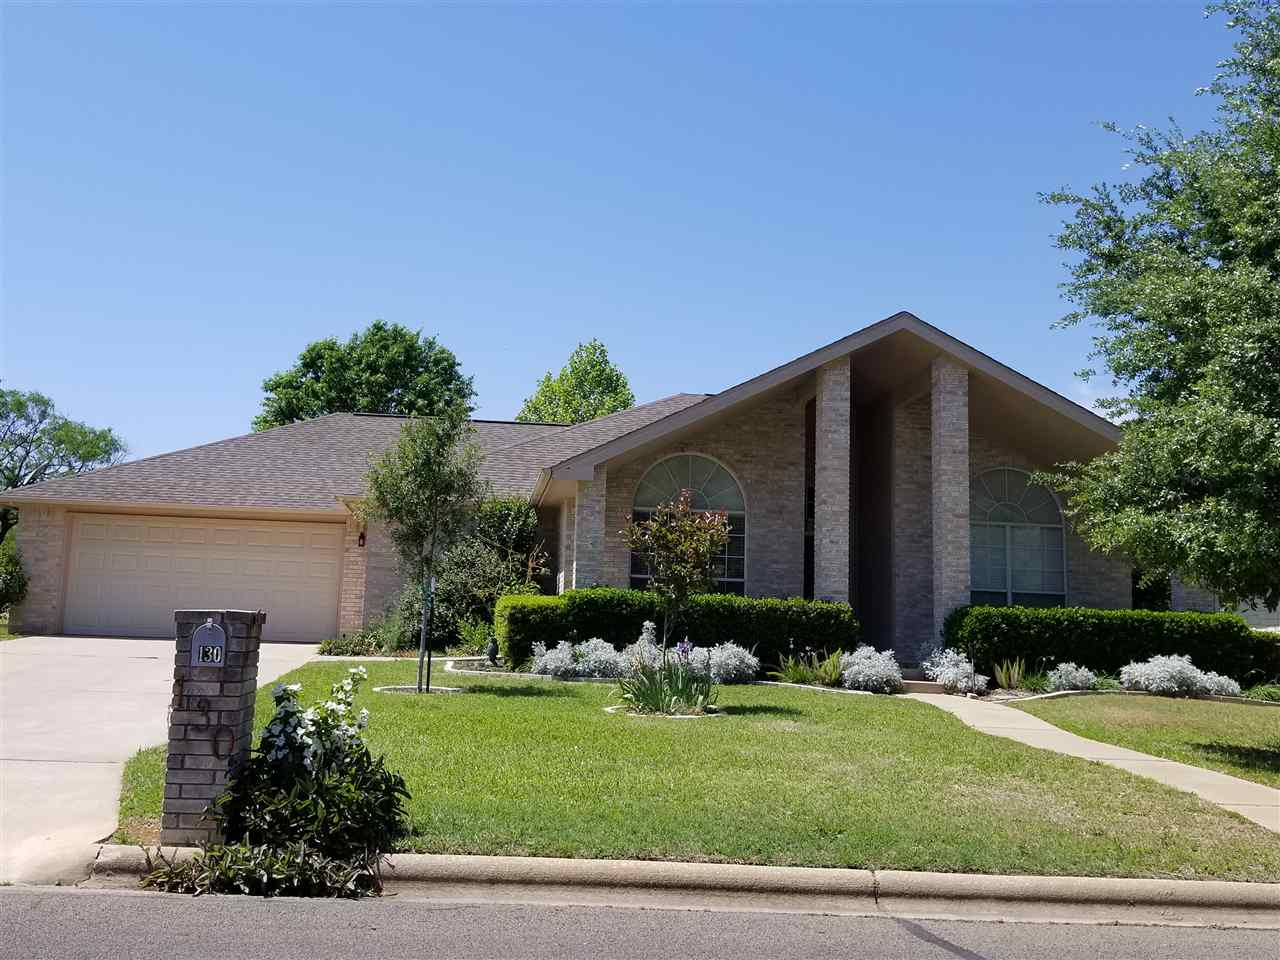 Single Family Home for Sale at 130 Broadmoor 130 Broadmoor Meadowlakes, Texas 78654 United States